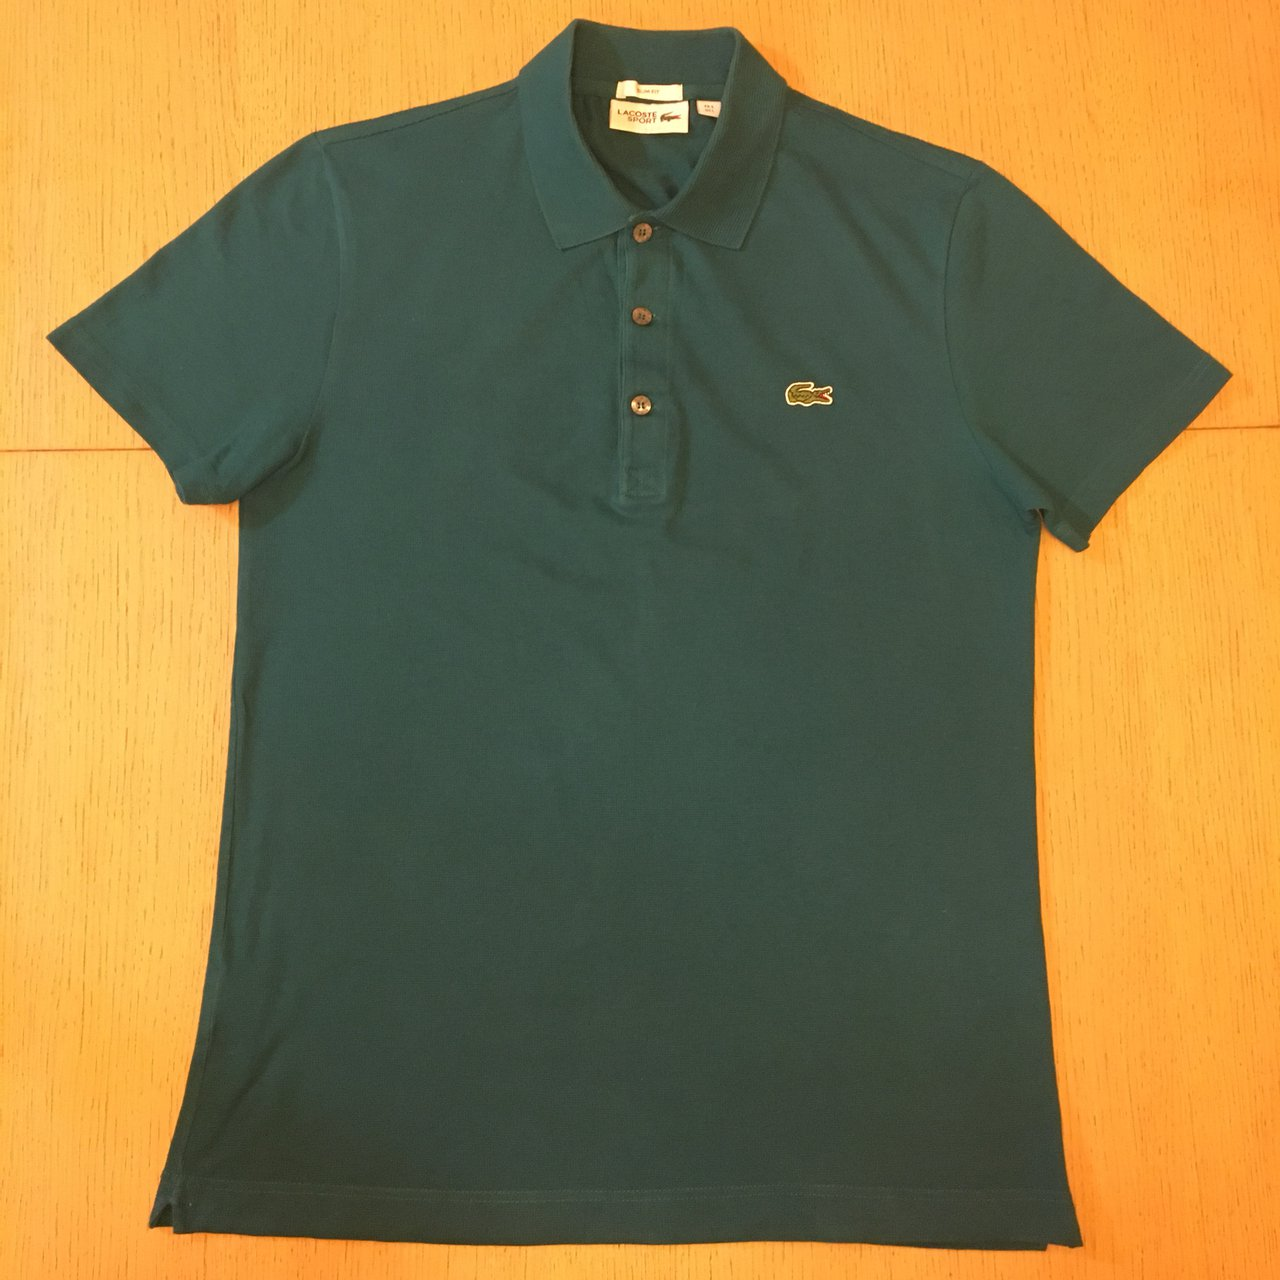 2519095c Lacoste Polo Shirt Large Mens Slim Fit Turquoise Worn Depop